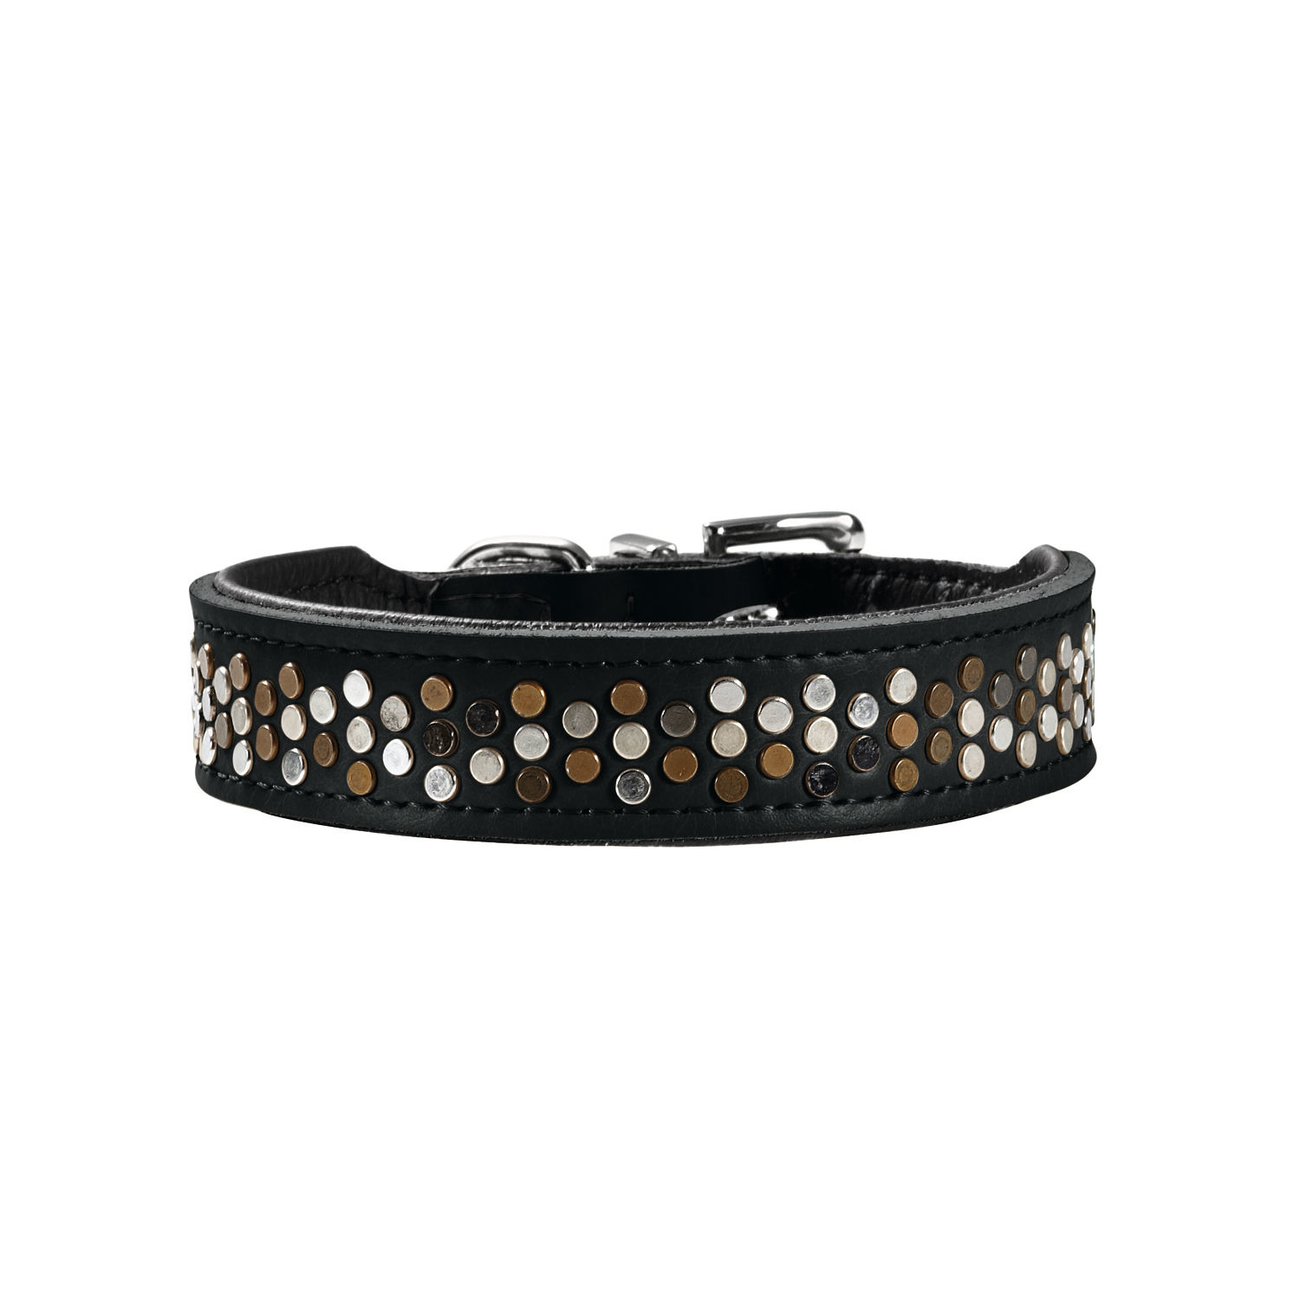 Hunter Rivellino Halsband 60079, Bild 3